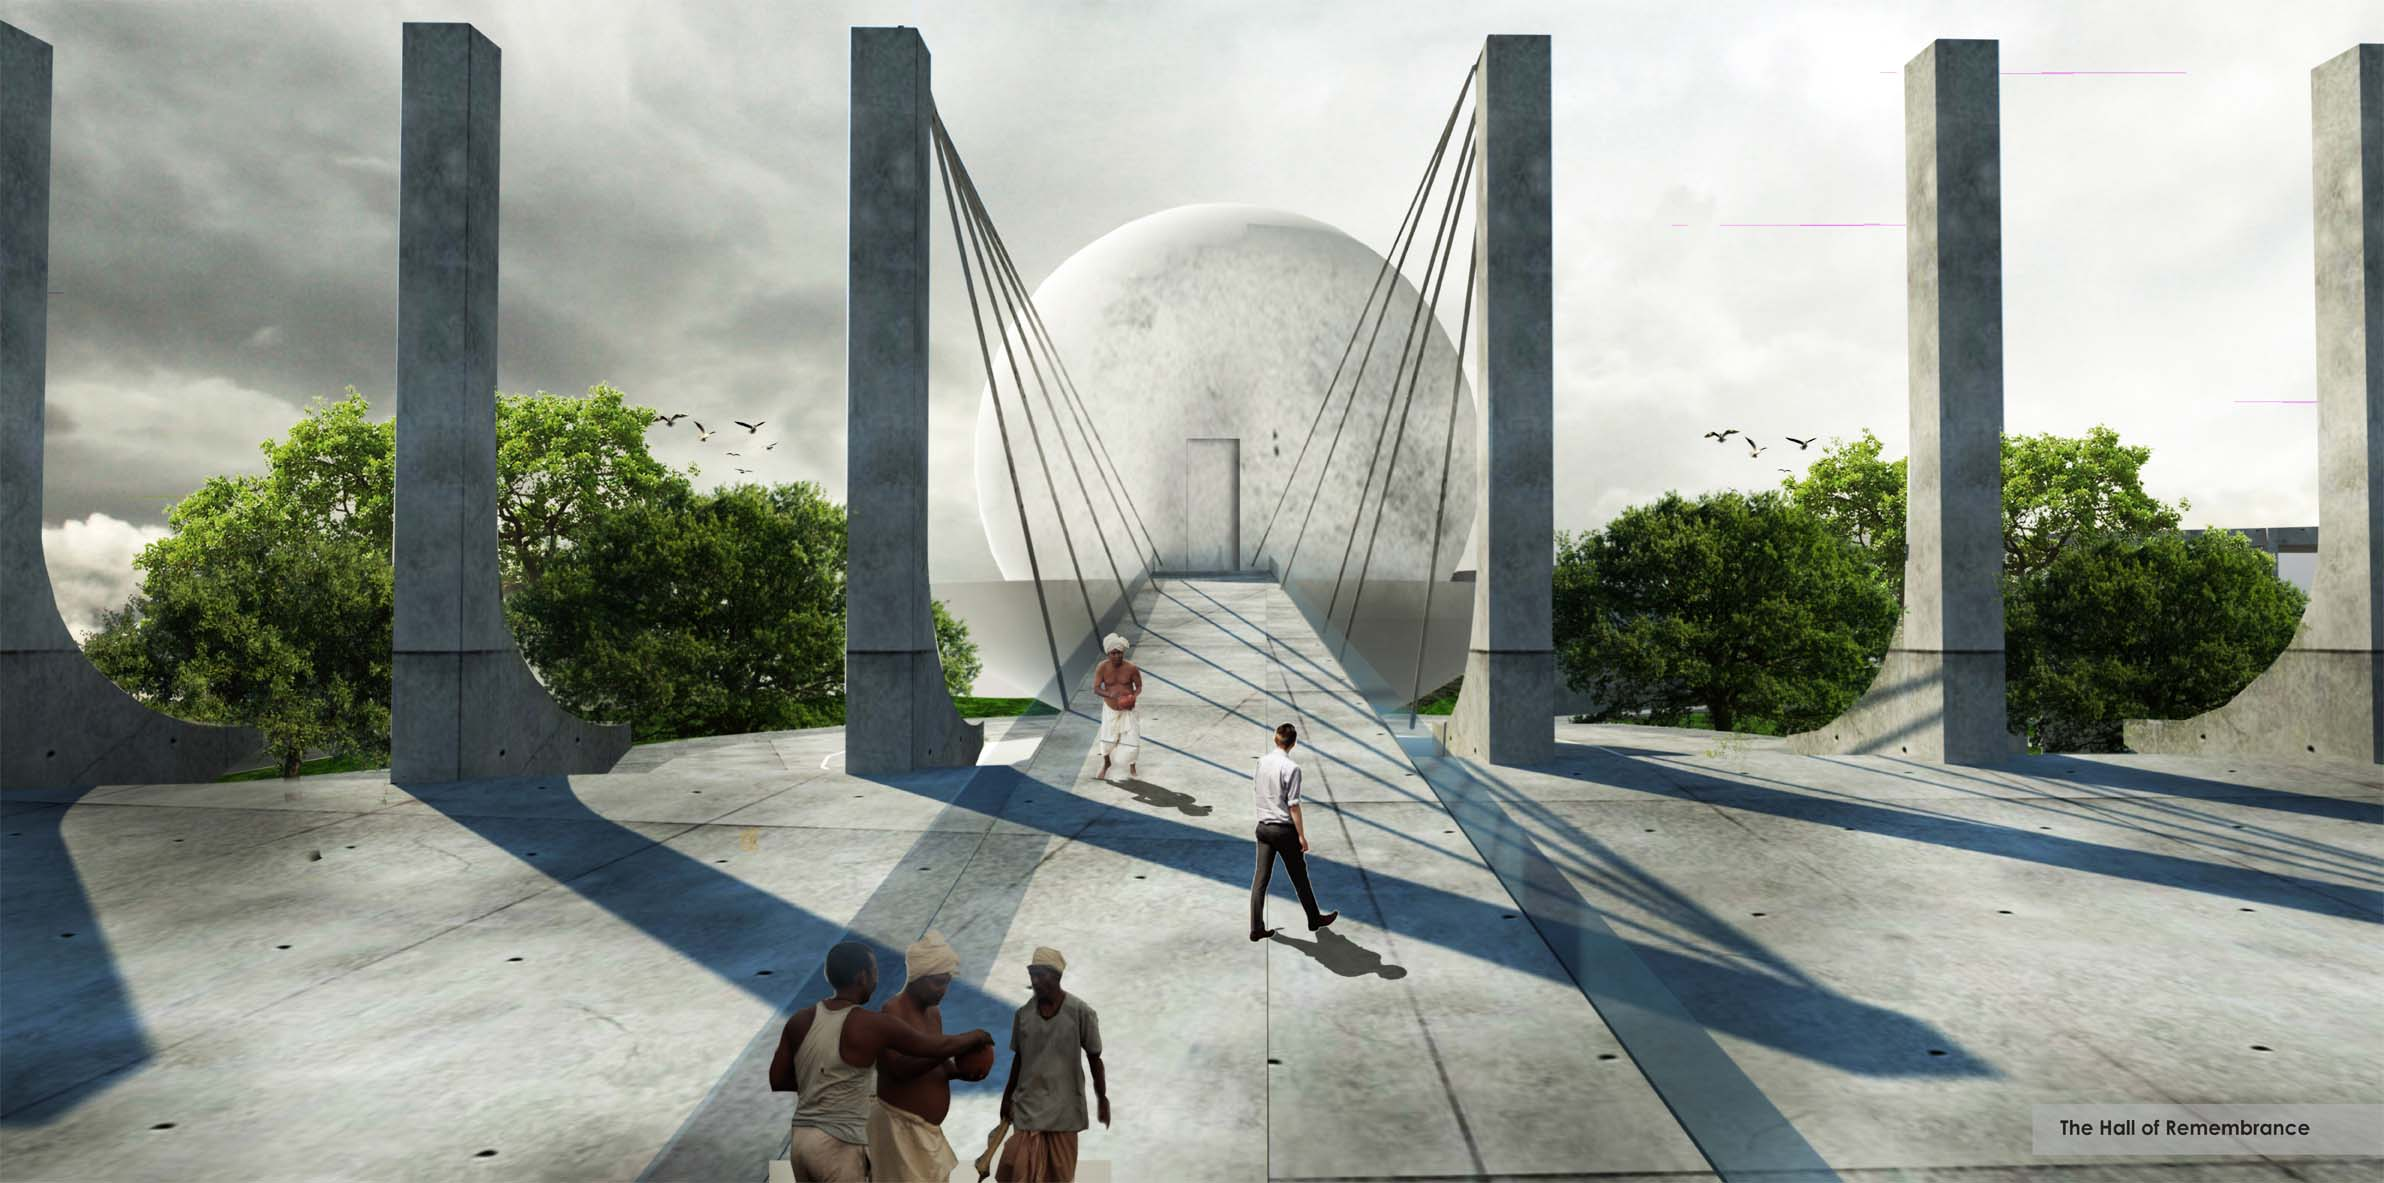 Dead Spaces: Architects Rethink The Afterlife   CNN Style